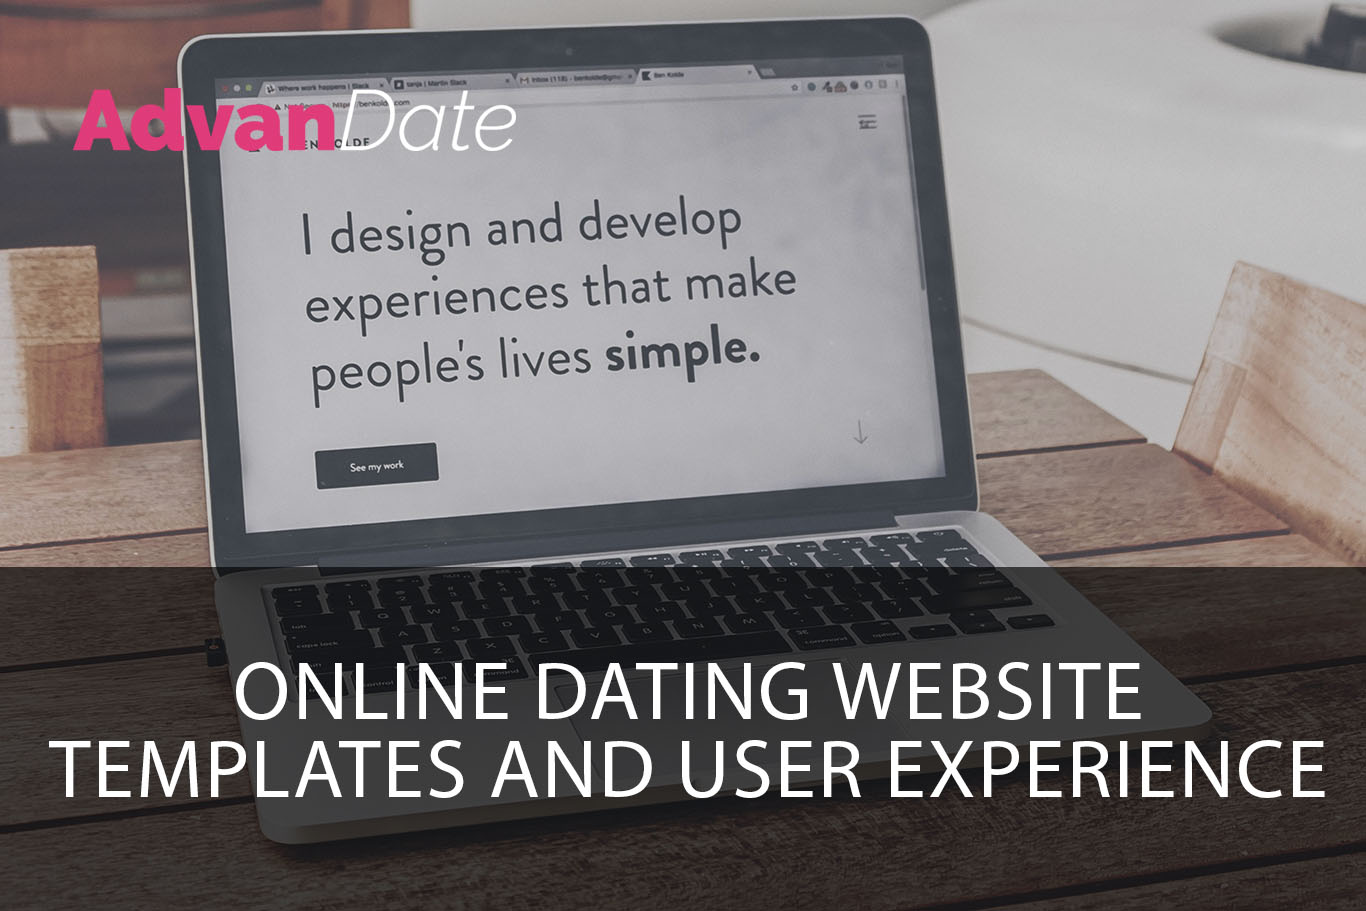 Online dating website templates and user experience